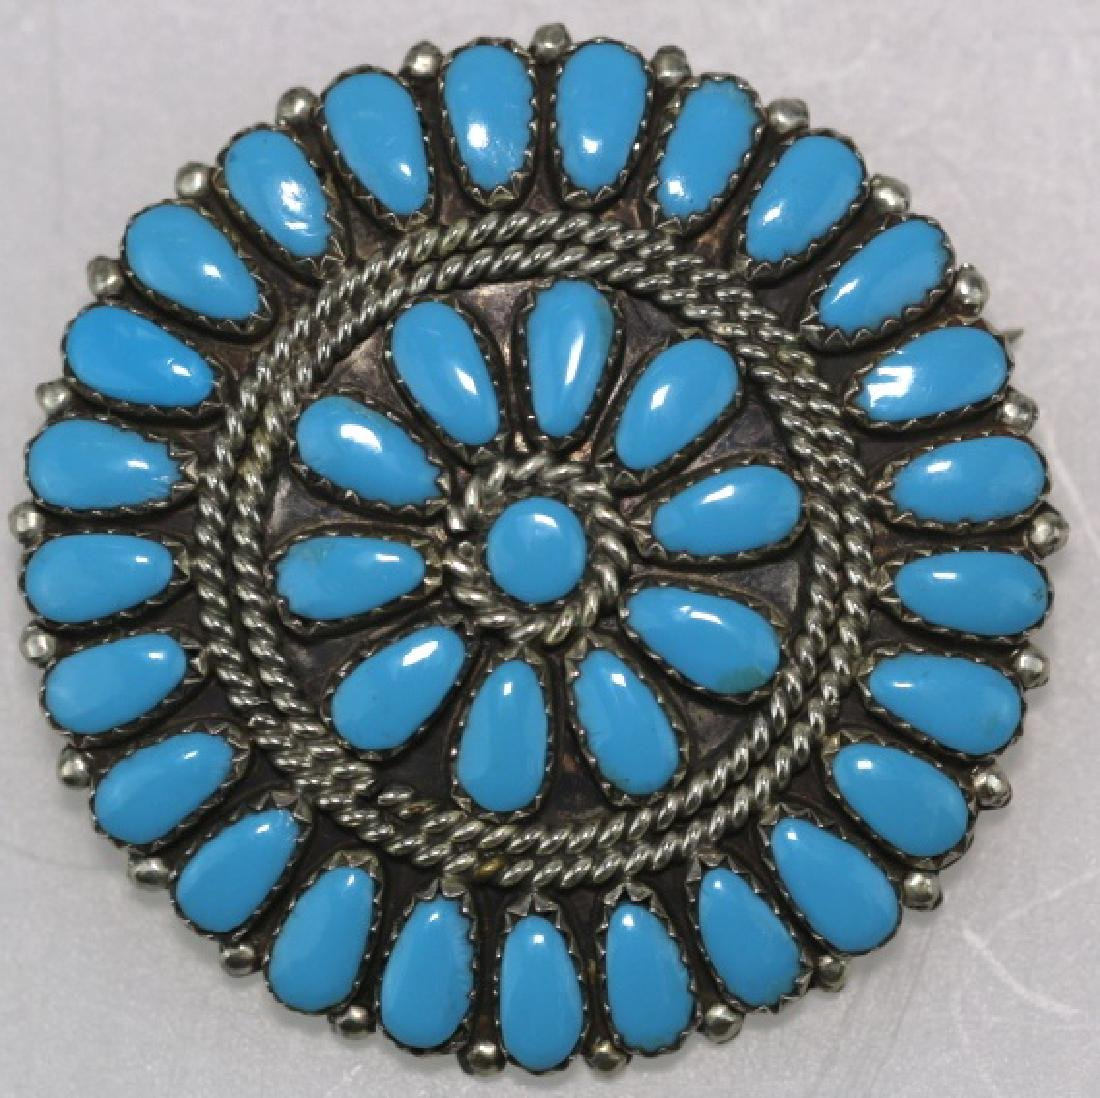 STERLING SILVER TURQUOISE PETITE POINT BROOCH - 2